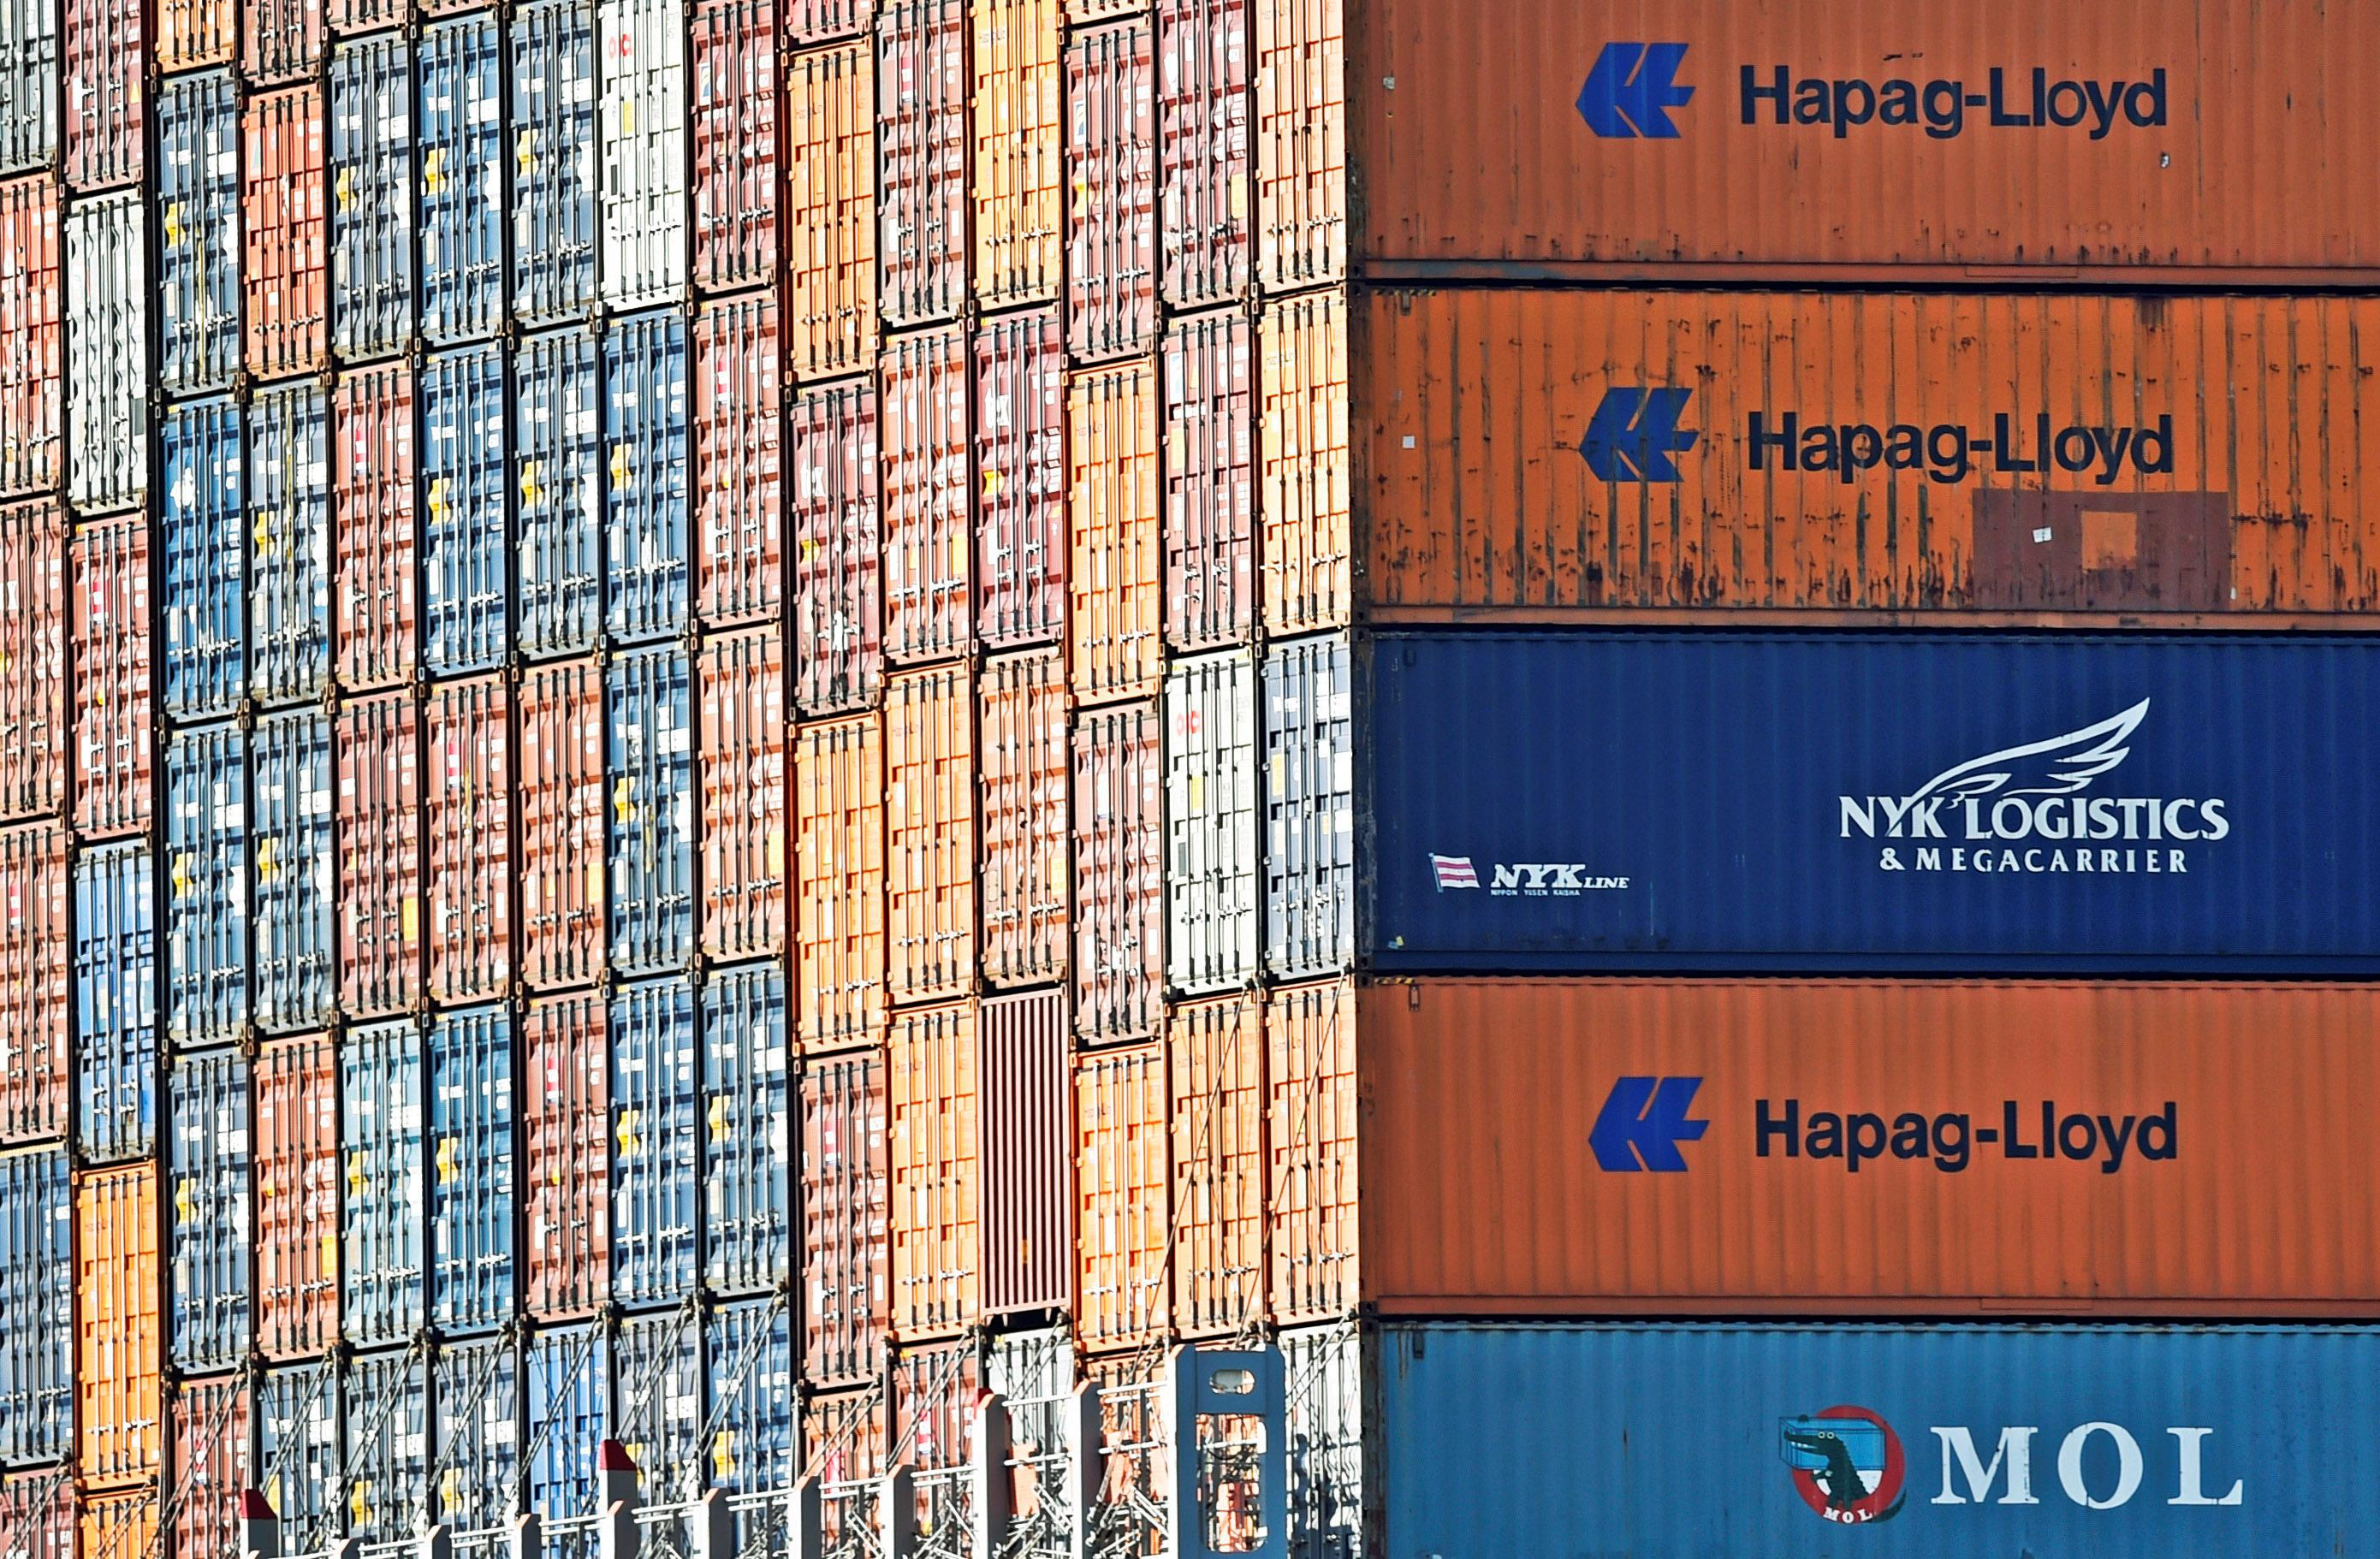 Germany's export-dependent industry feels pain of trade conflicts